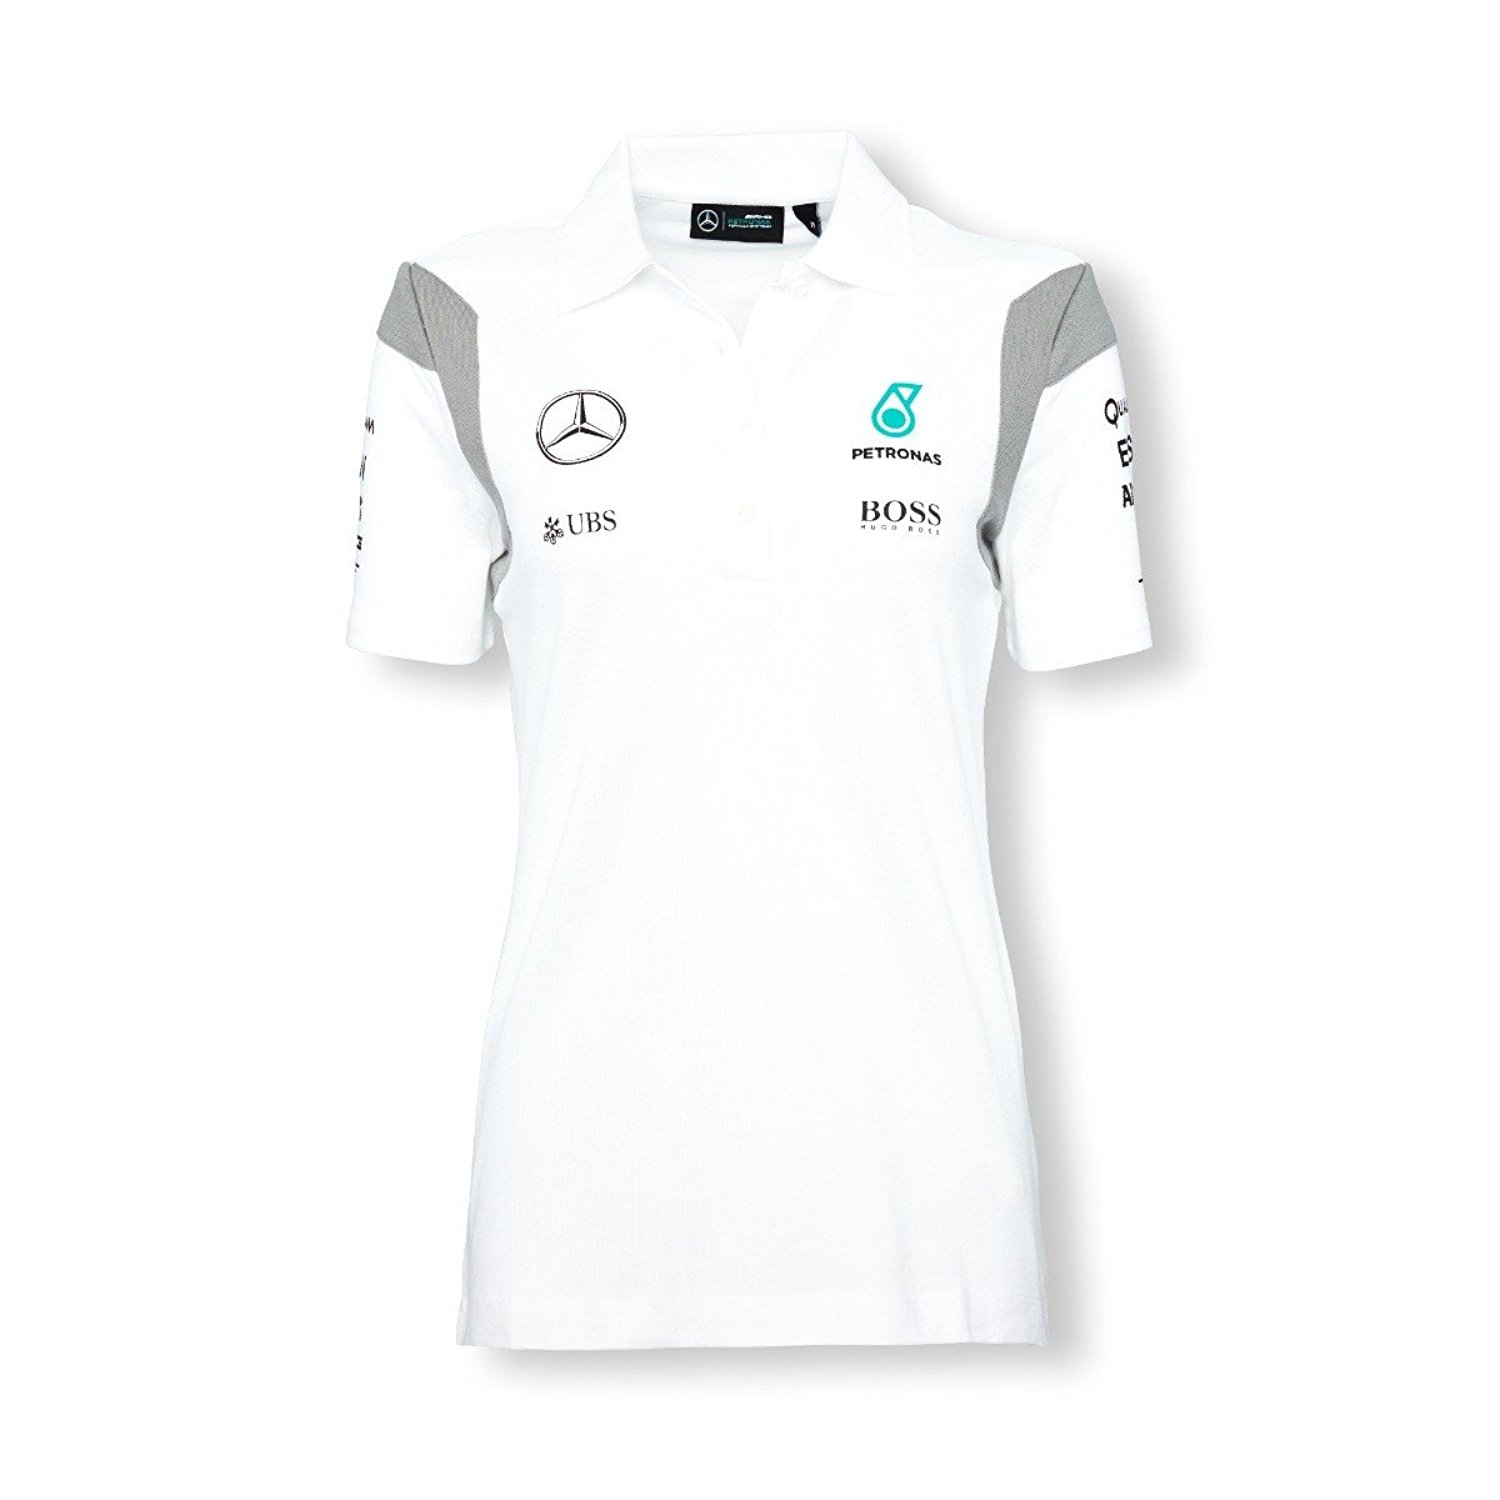 d7f94b3f2 Get Quotations · Mercedes AMG Petronas Polo Shirt Womens 2016 Replica